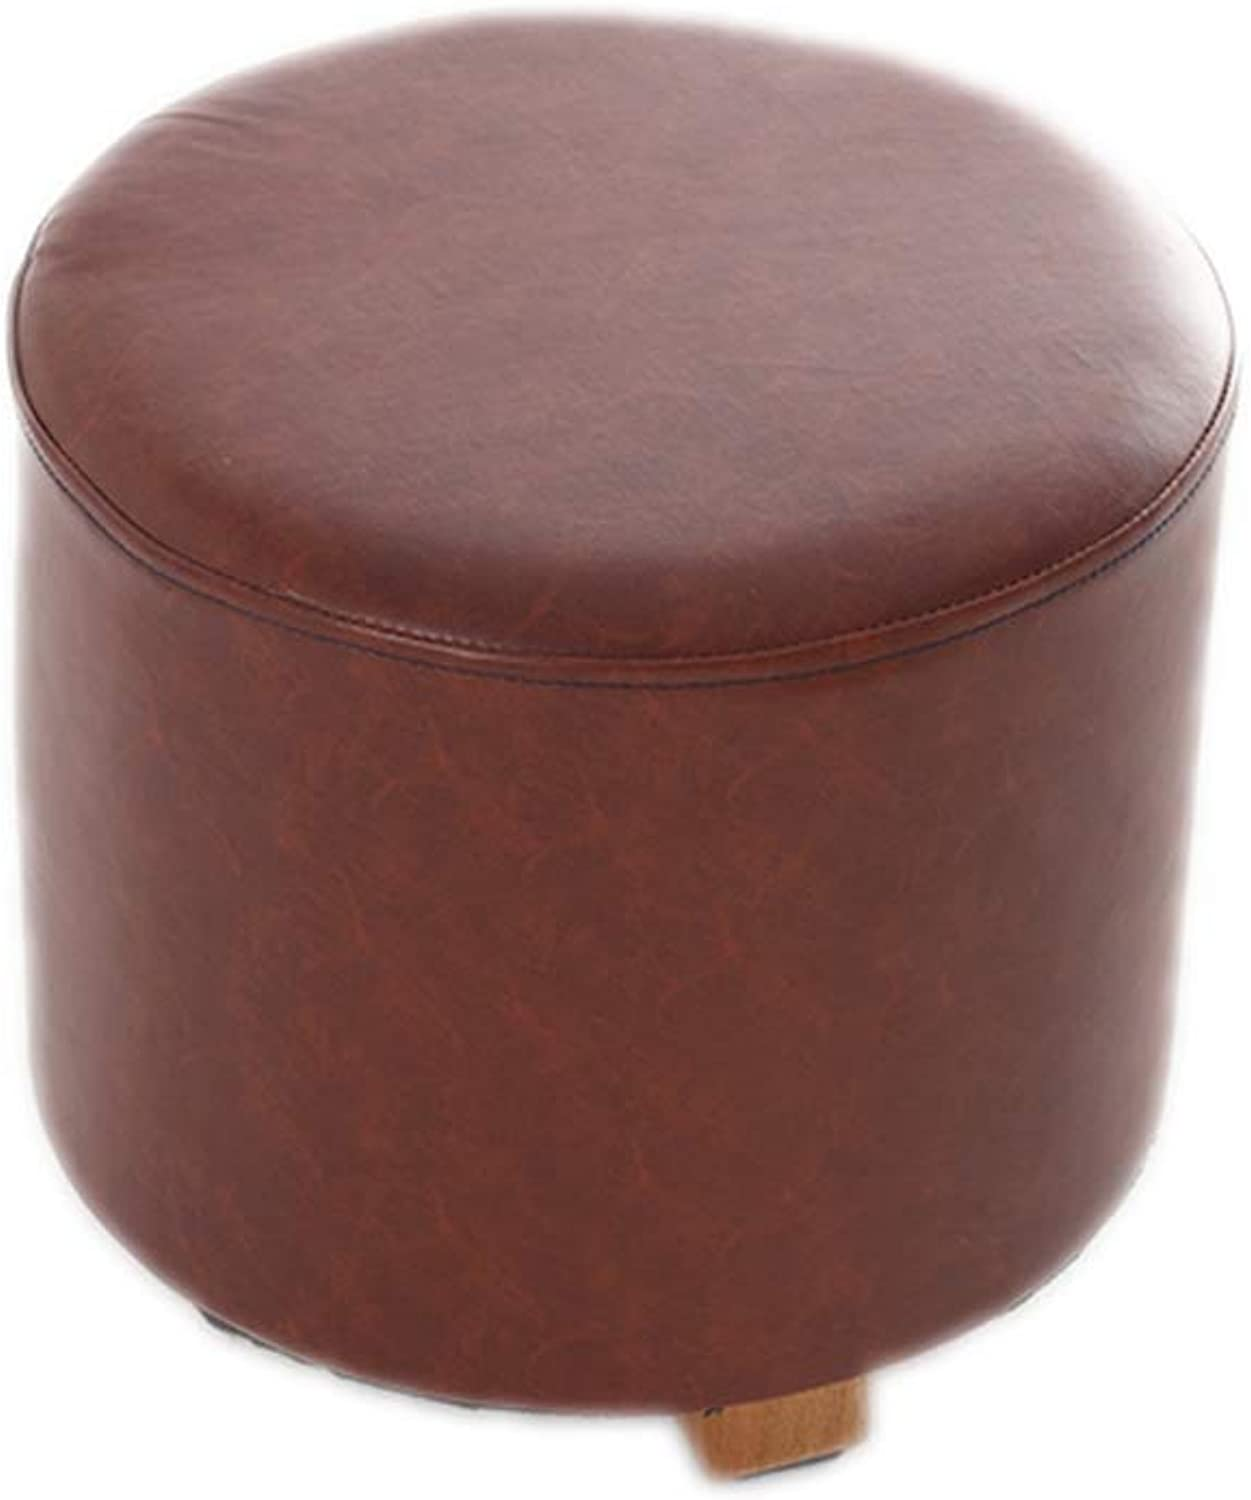 Footstool Change shoes Bench Columnar Small Chairs Seating Chair Round Upholstered Wooden Legs Foot Stools Home Multi-Function LEBAO (color   Brown)